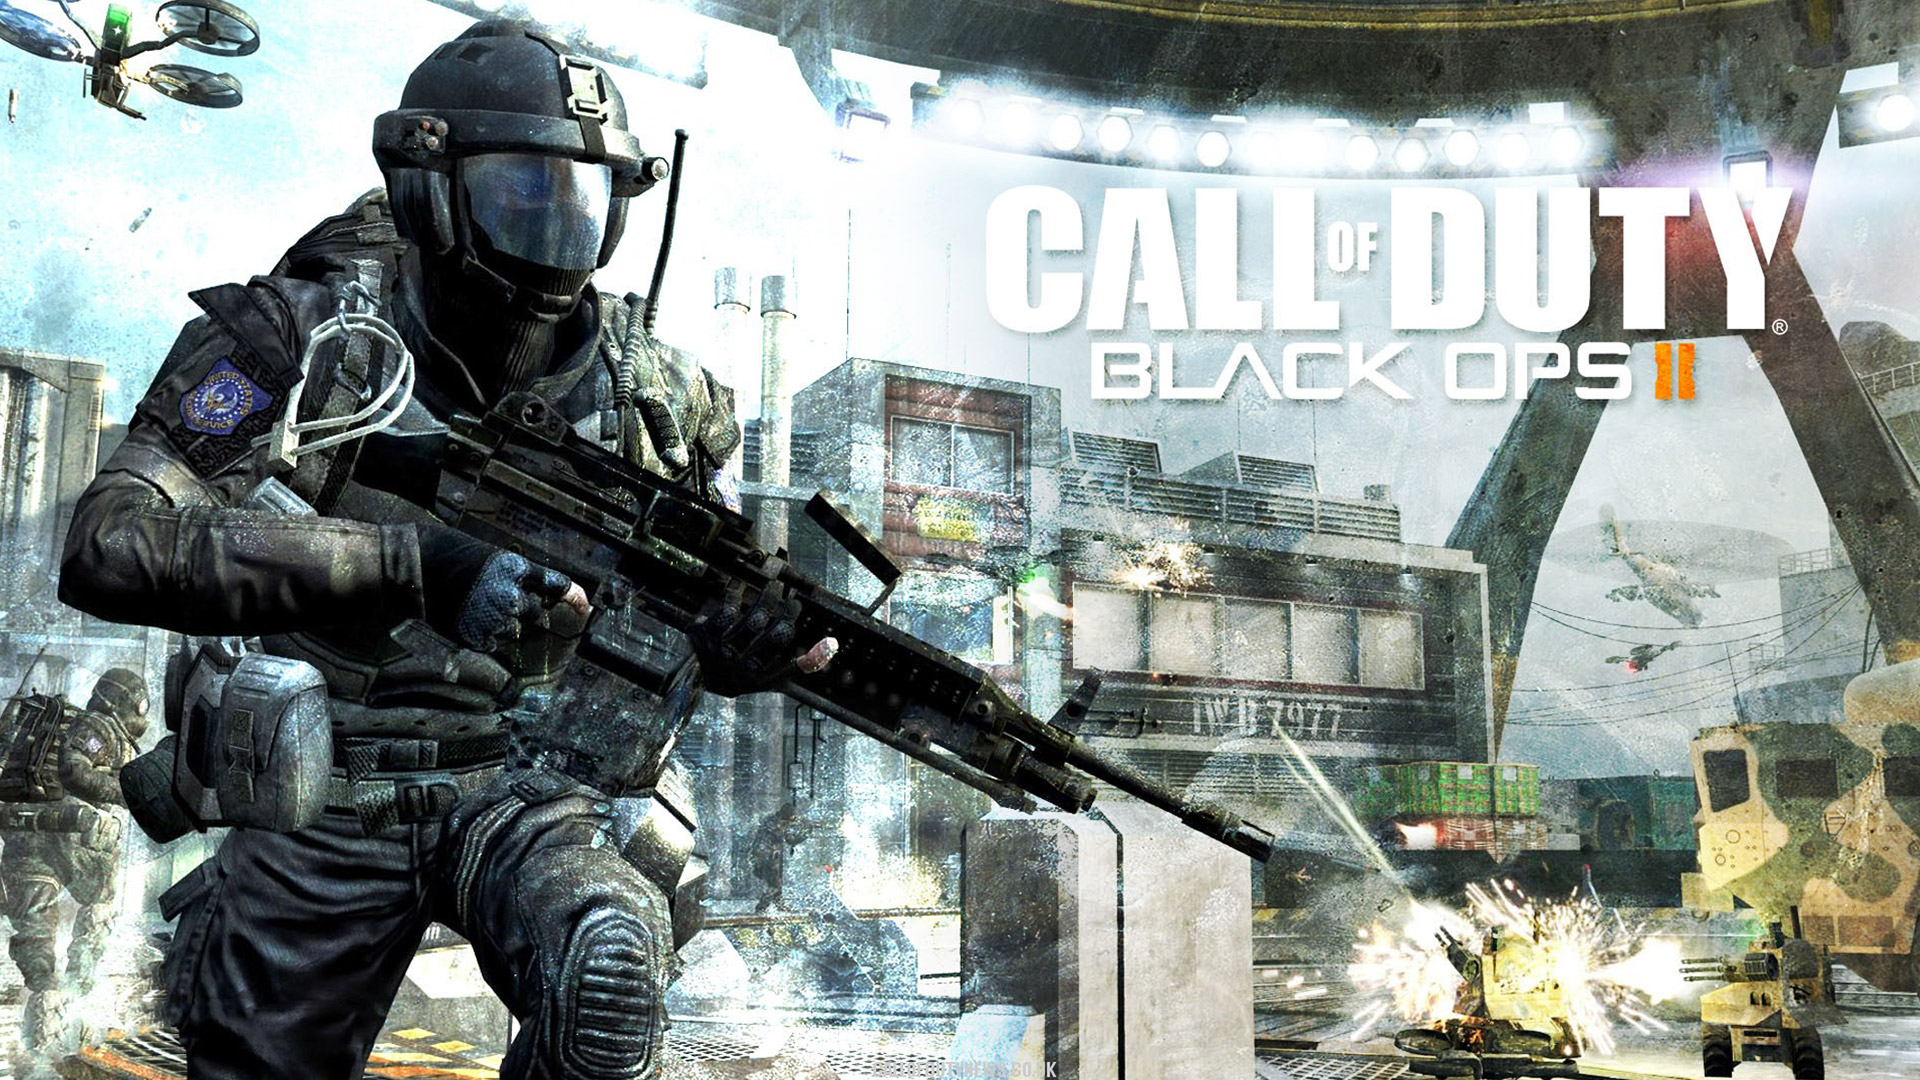 Call Of Duty Black Ops 2 Wallpaper 21 Wallpapersbq